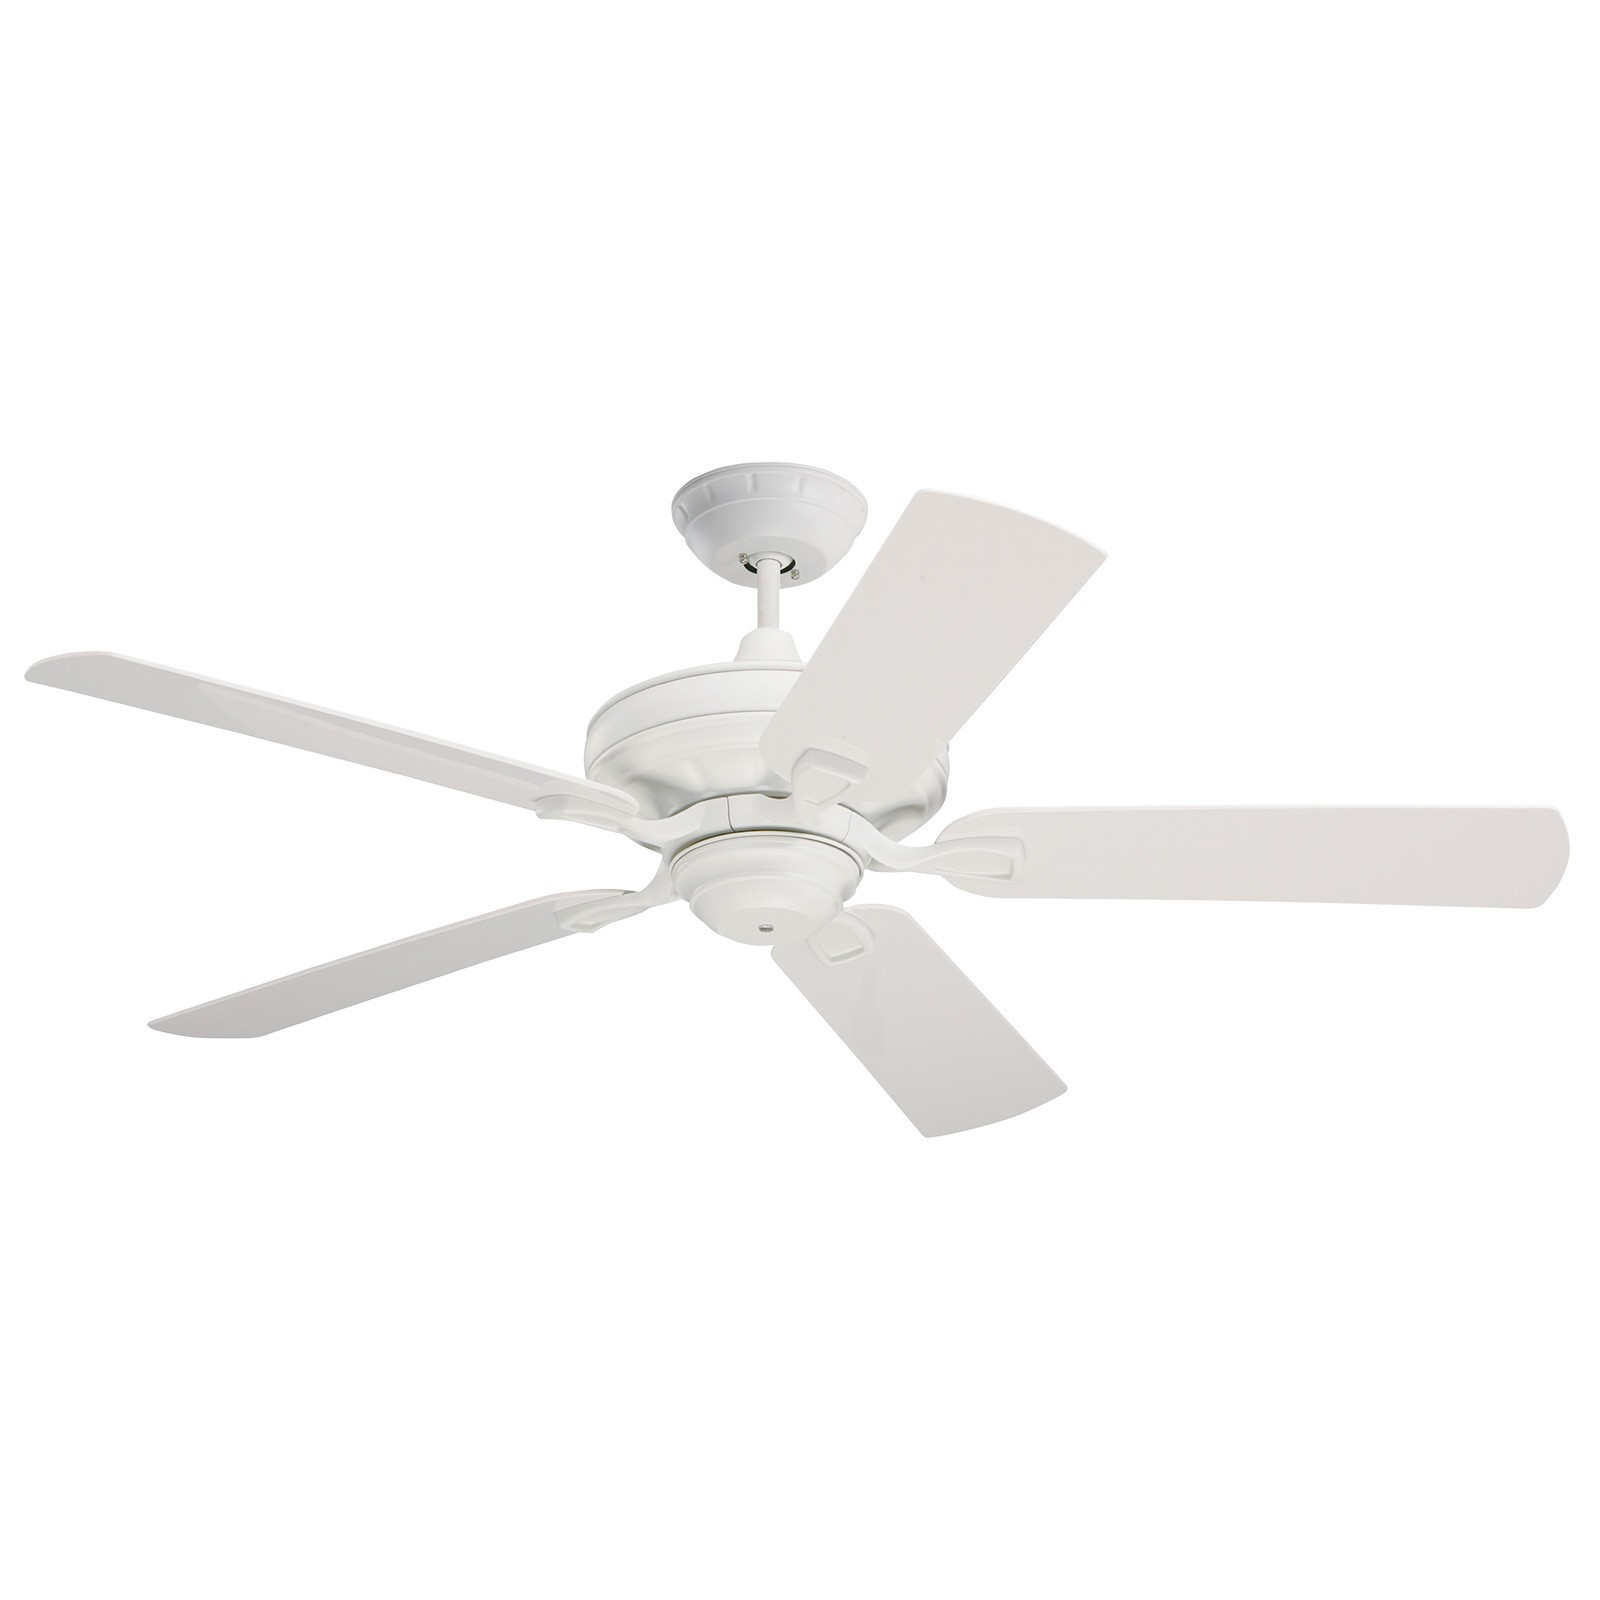 Emerson Verandah Indoor / Outdoor Ceiling Fan, 132cm/52